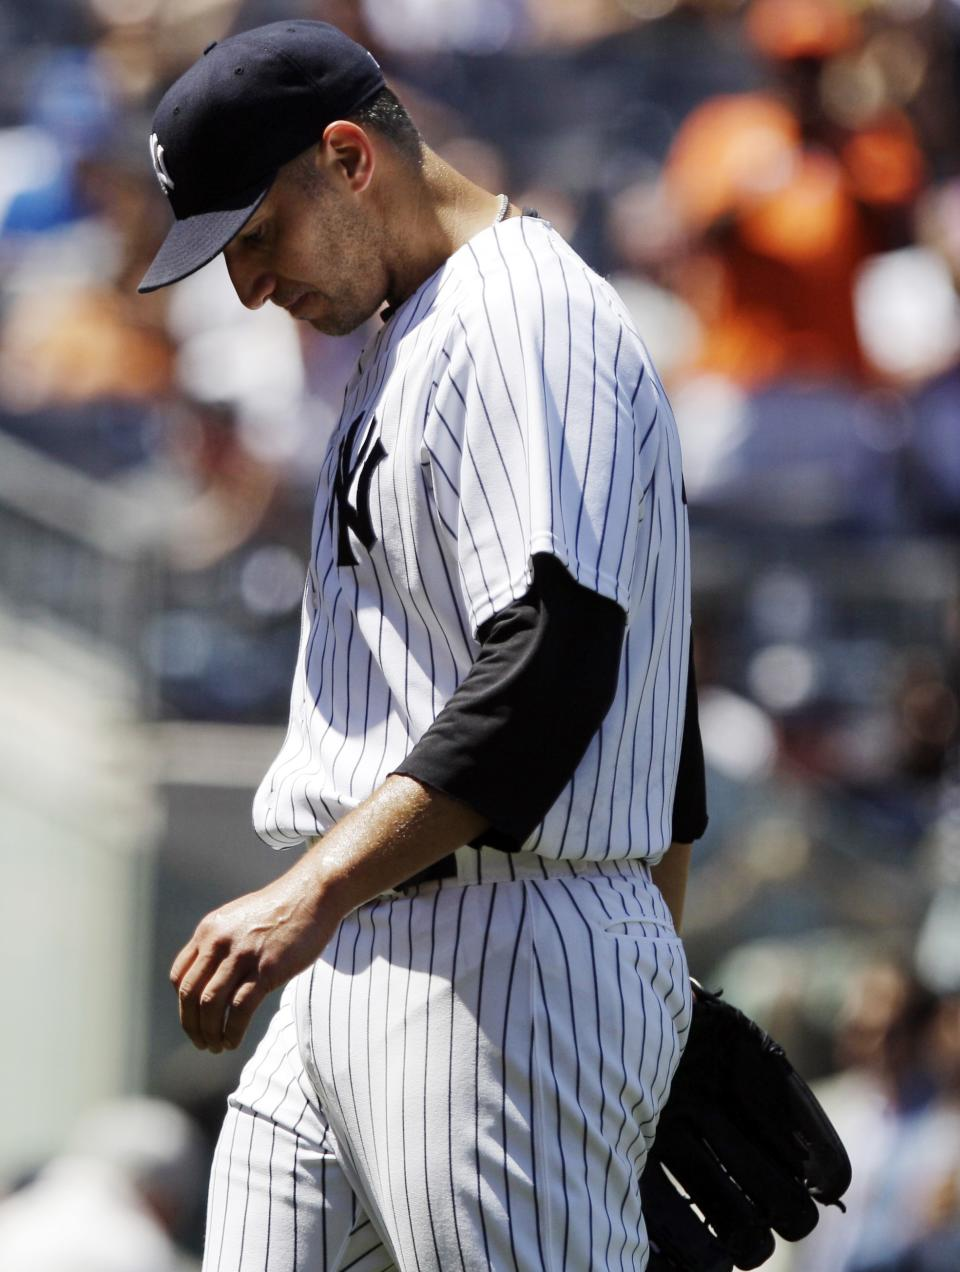 New York Yankees' Andy Pettitte leaves the game during the fifth inning of a baseball game against the Cleveland Indians Wednesday, June 27, 2012, in New York. (AP Photo/Frank Franklin II)